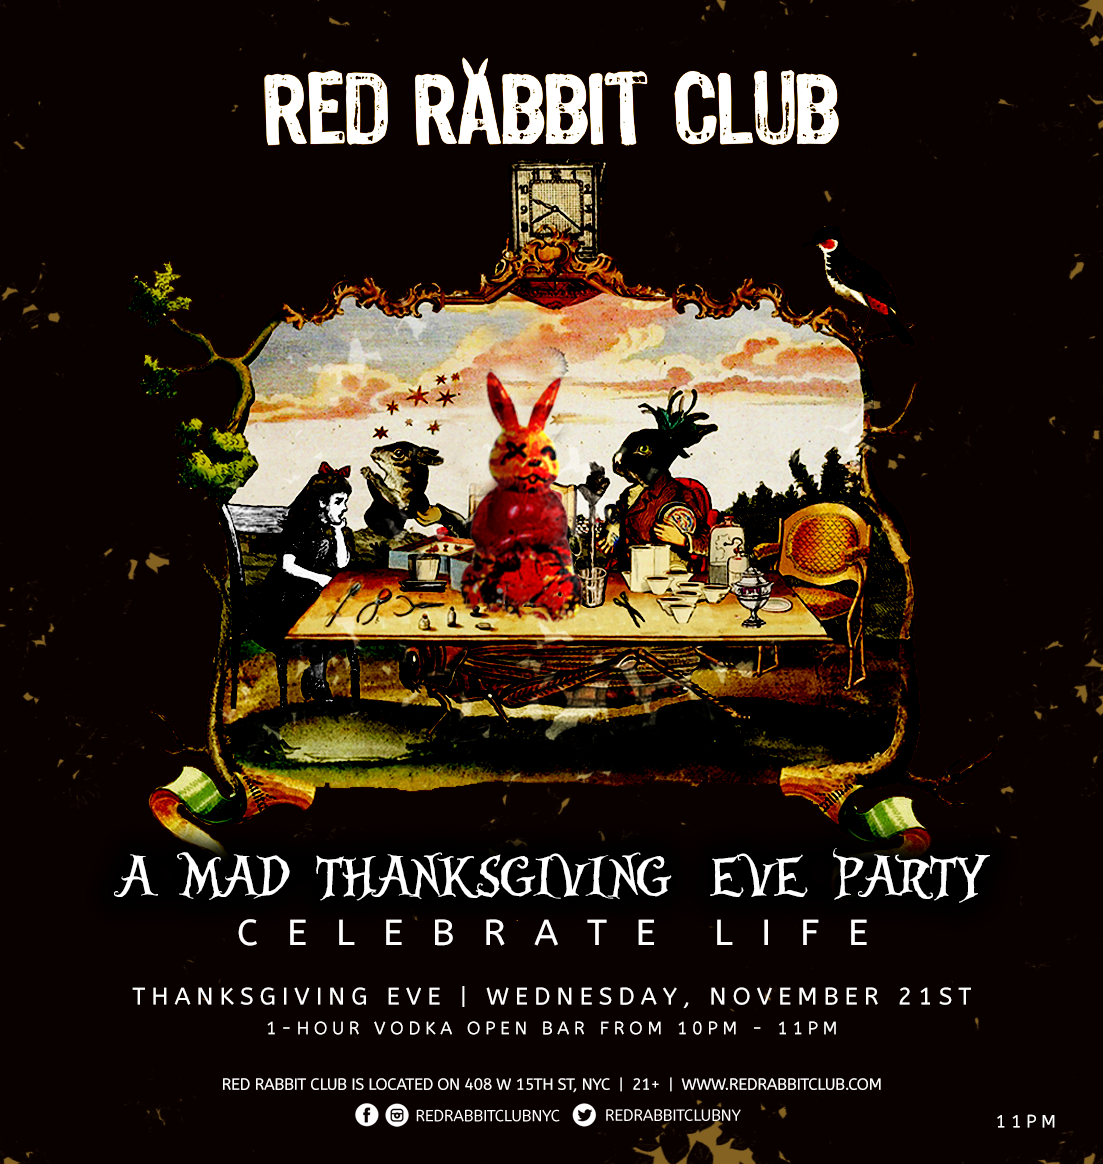 Red Rabbit Club - A Mad Thanksgiving Eve Party - Nov 21